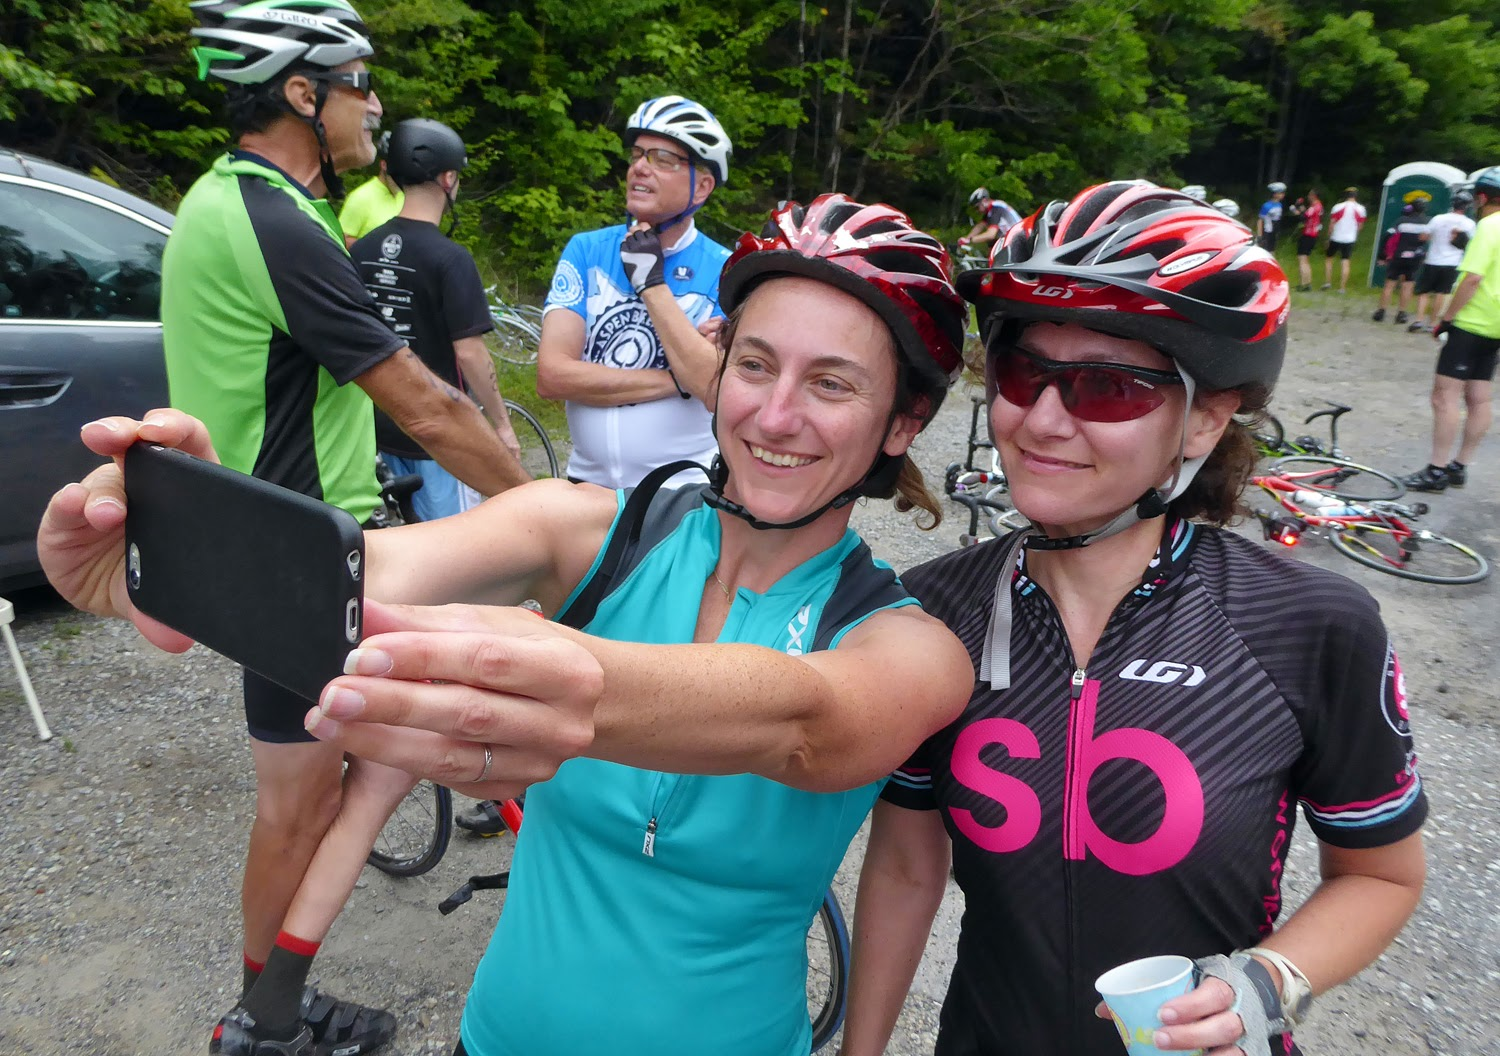 Friends stop for selfie at one of the rest stops. Copyright by Dave Kraus/ Krausgrafik.com